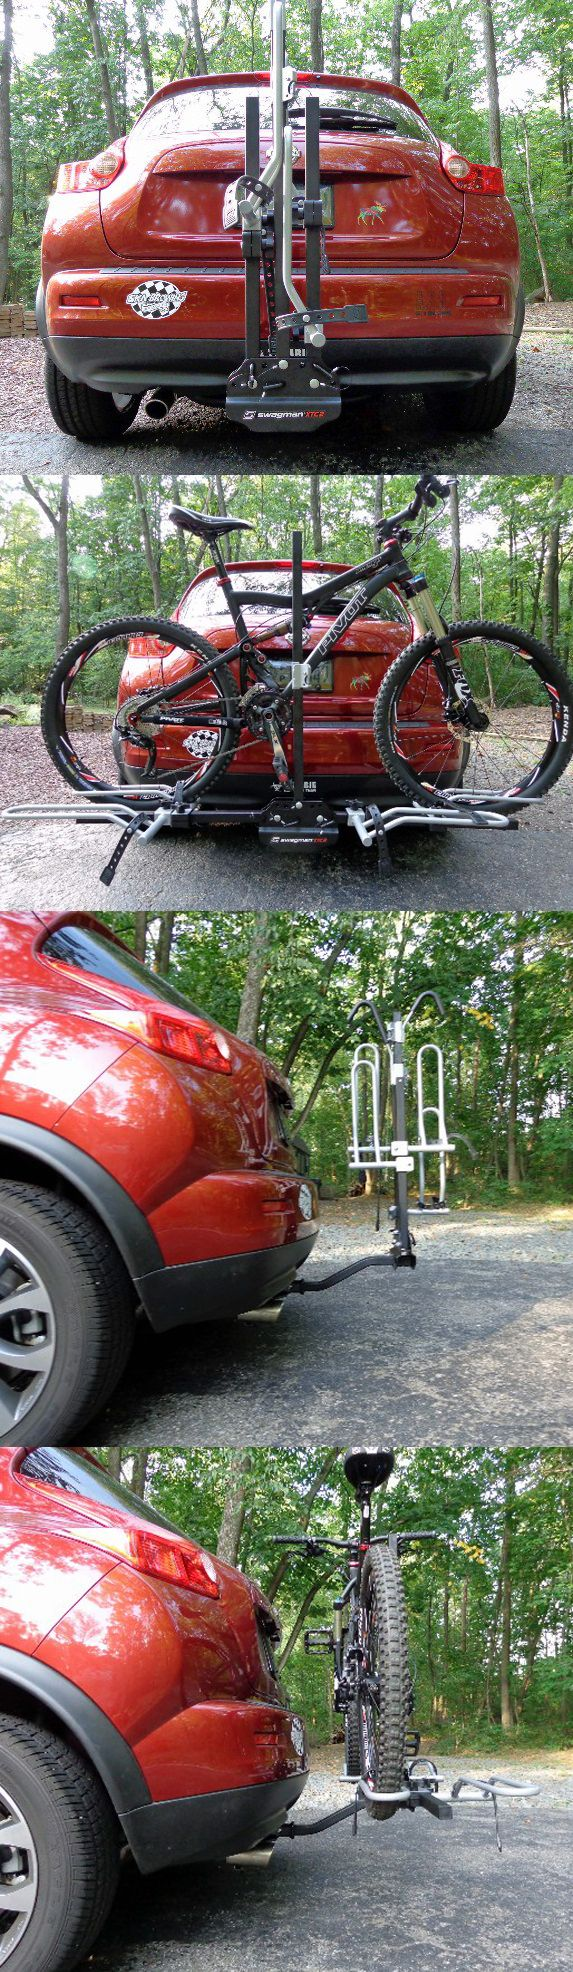 Swagman xtc 2 2 bike platform rack for 1 1 4 and 2 trailer hitches